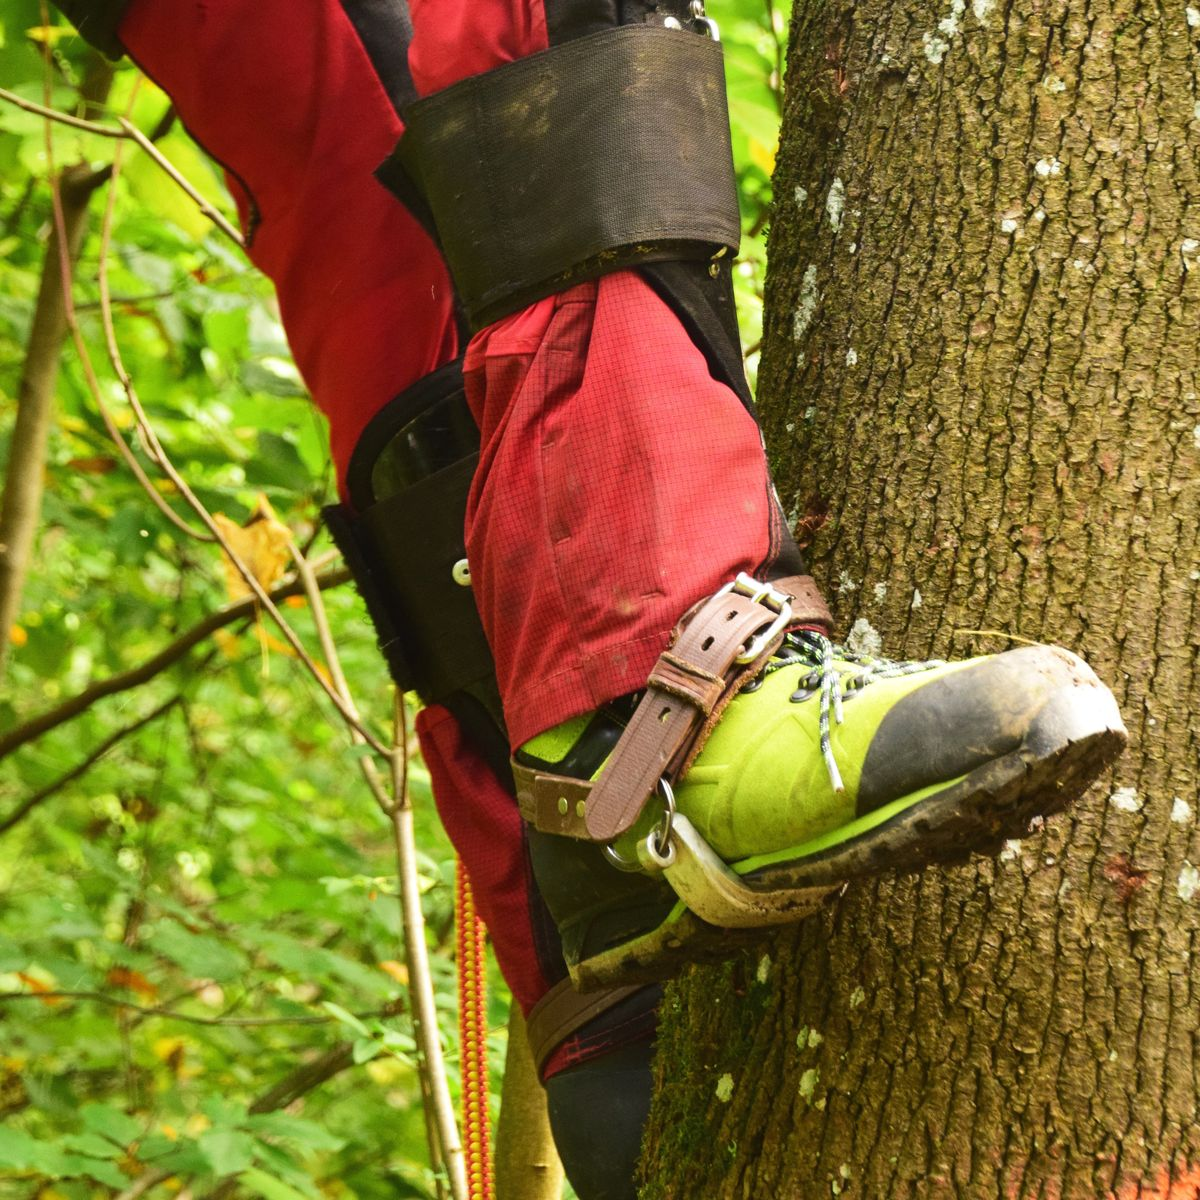 Chainsaw protection shoe in tree care with climbing spurs